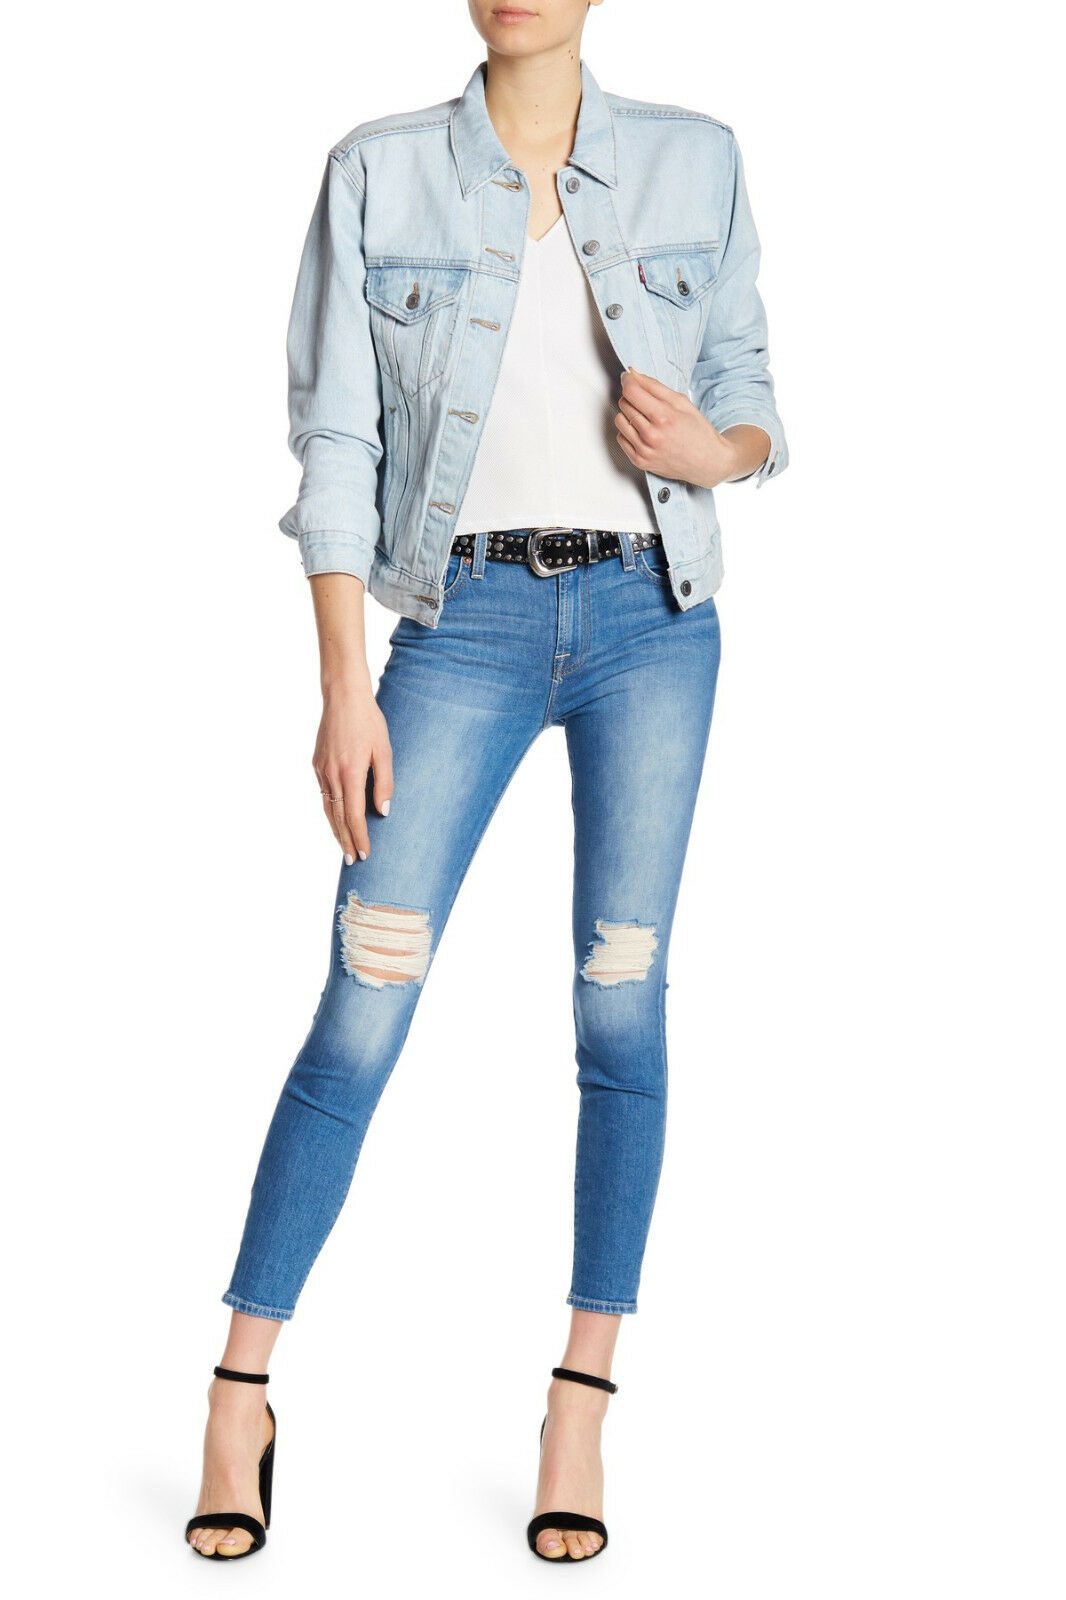 209 NEW 7 For All Mankind Ankle Gwenevere with Destroy in Breezy Visby Size 28